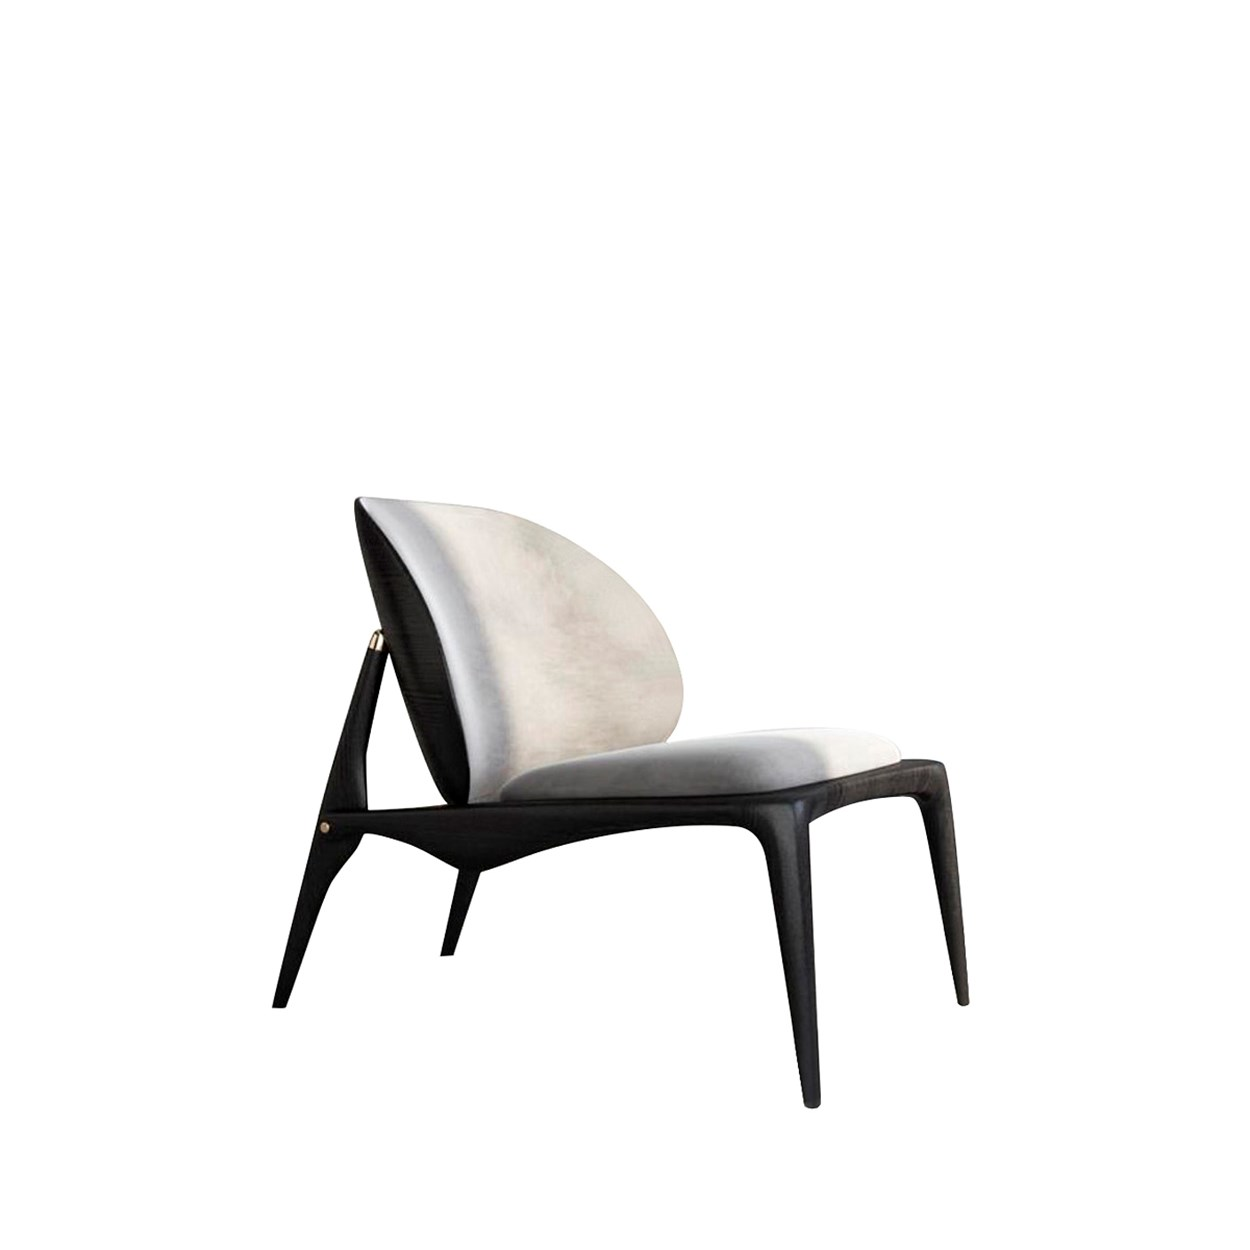 coleccion-alexandra-the-one-collection-yuan-lounge-chair.jpg